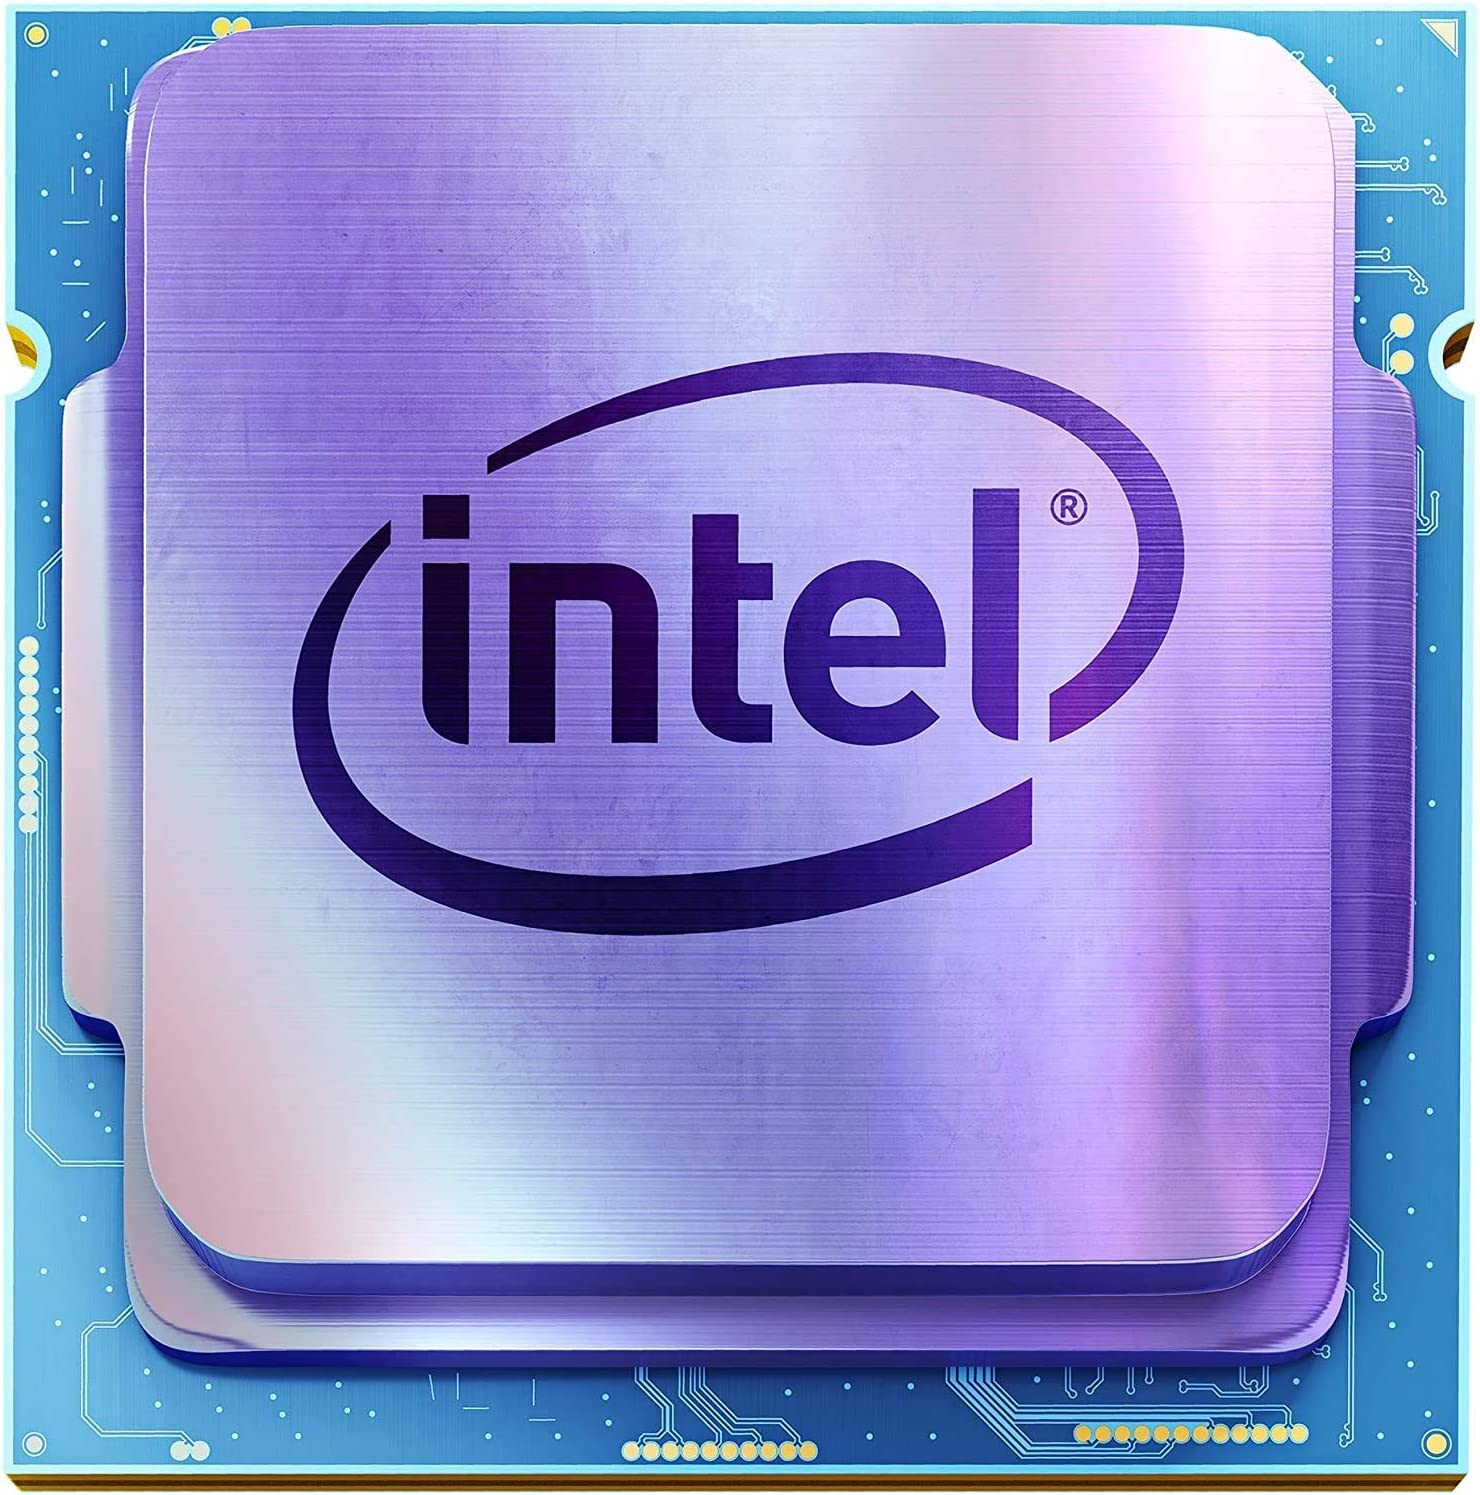 Intel Core i9-10900KF 10 Core Desktop Processor Up to 5.3GHz Without Processor Graphics Comet Lake - OEM Tray Version (Same Cores and Speed as i9-10900K)